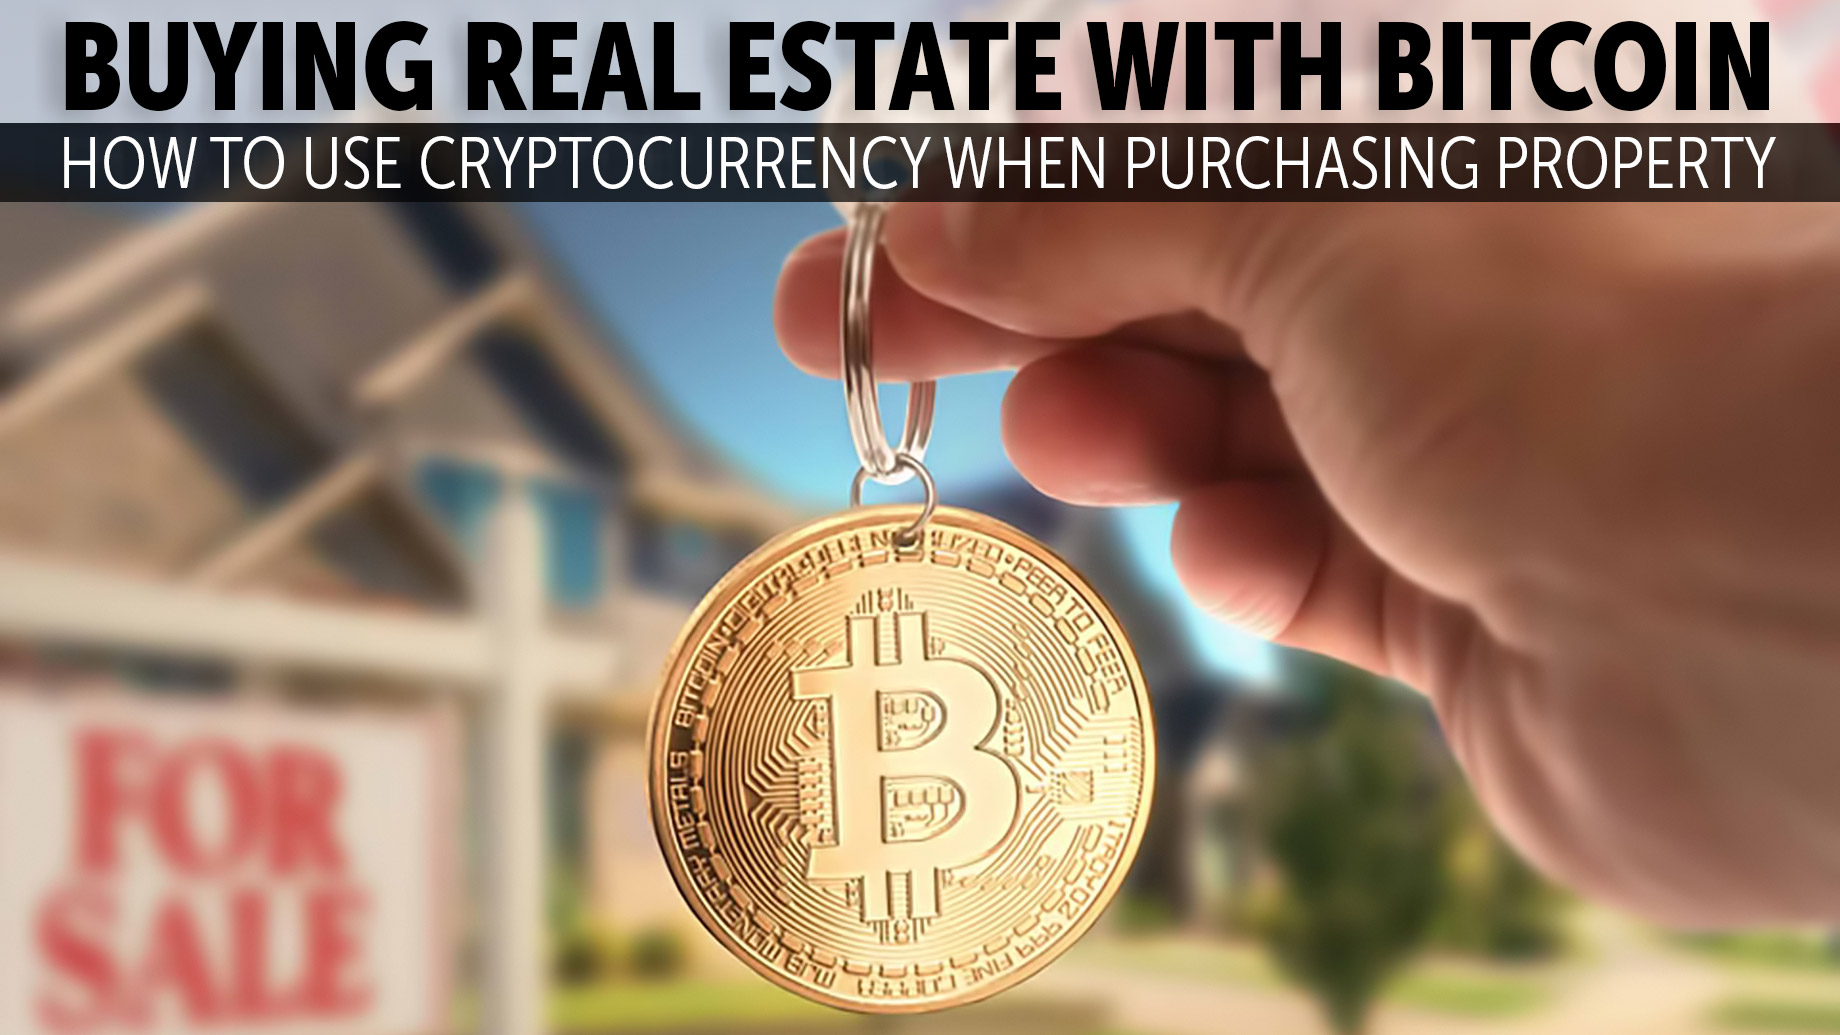 Buying Real Estate with Bitcoin - How to Use Cryptocurrency When Purchasing Property